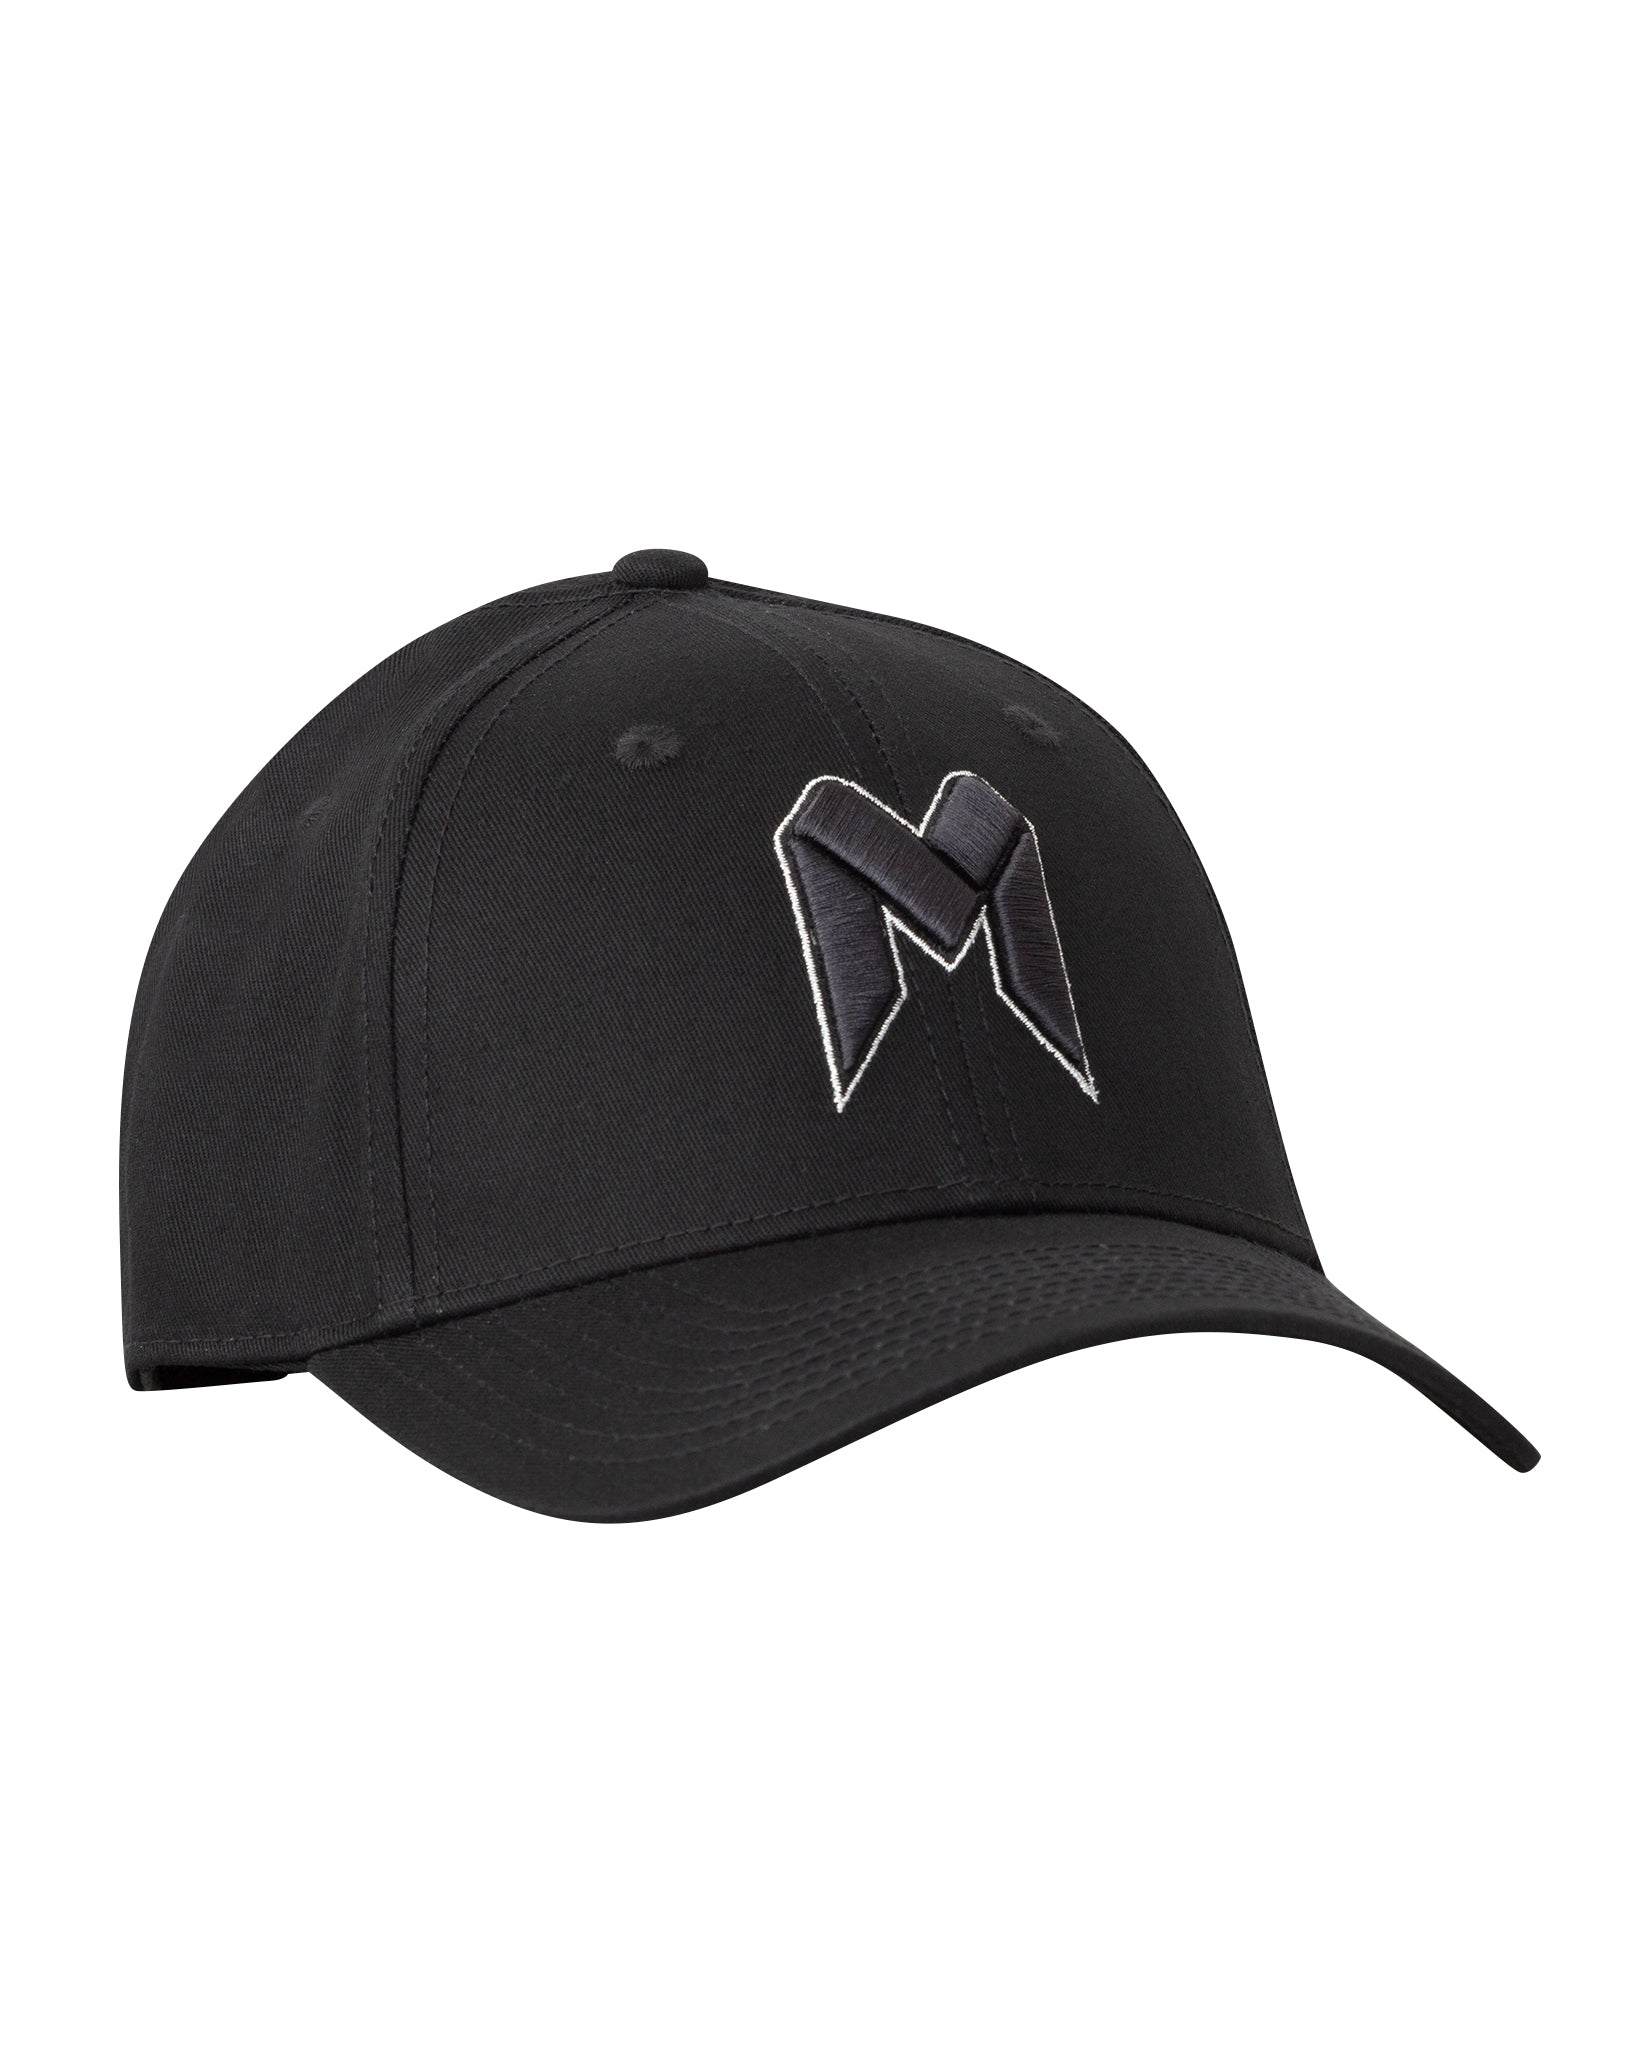 Melbourne United Black on Black Premium Curved Peak Cap